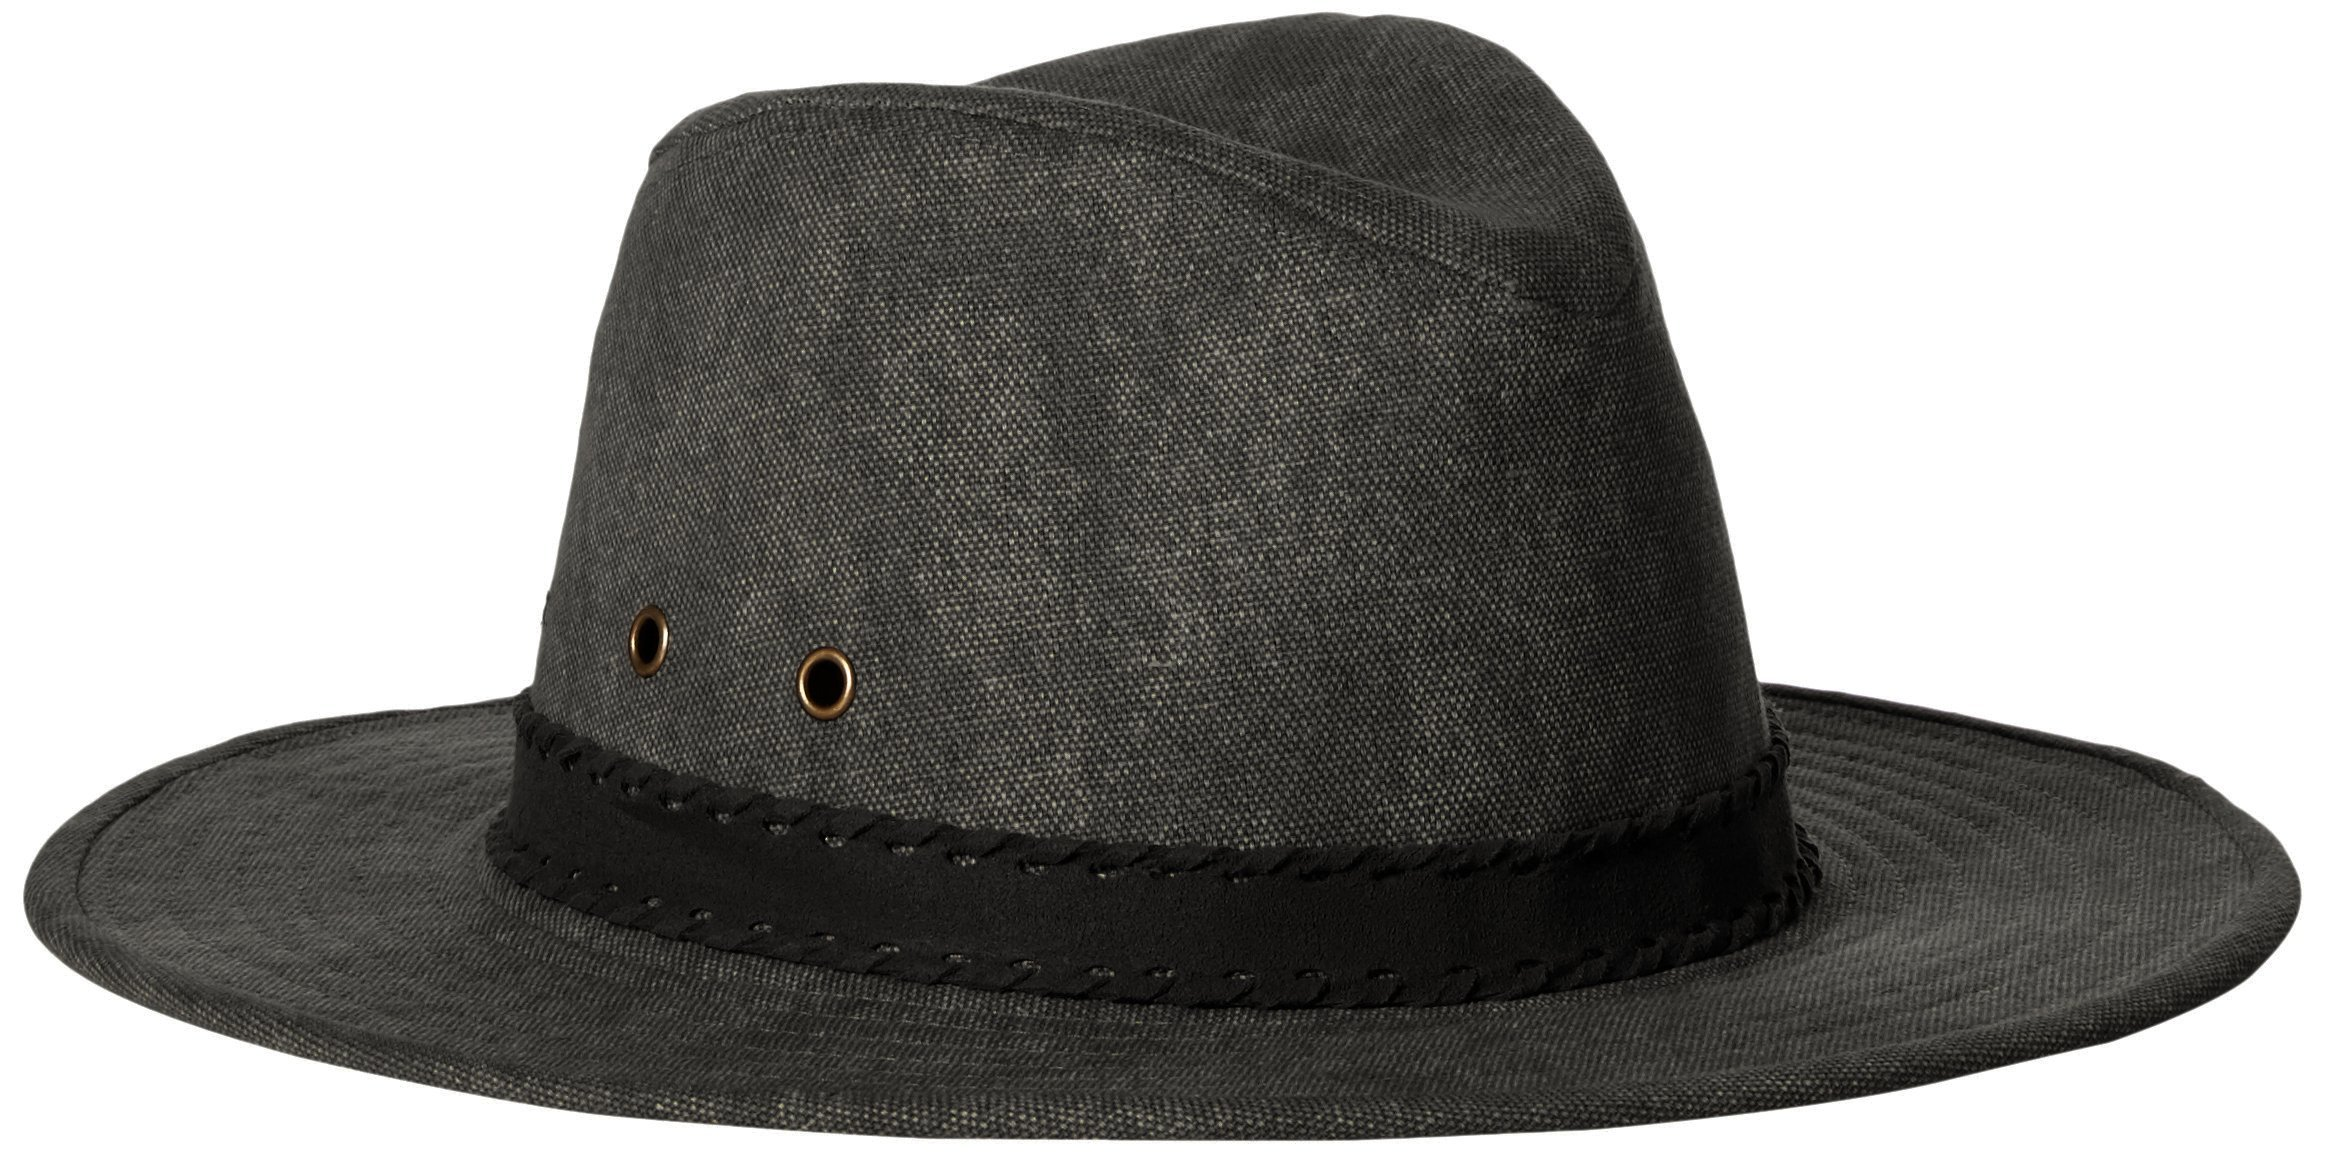 'ale by alessandra Women's Jaxson Adjustable Vintage Washed Canvas Hat with Suede Trim and UPF 50+, Charcoal/Black, Adjustable Head Size